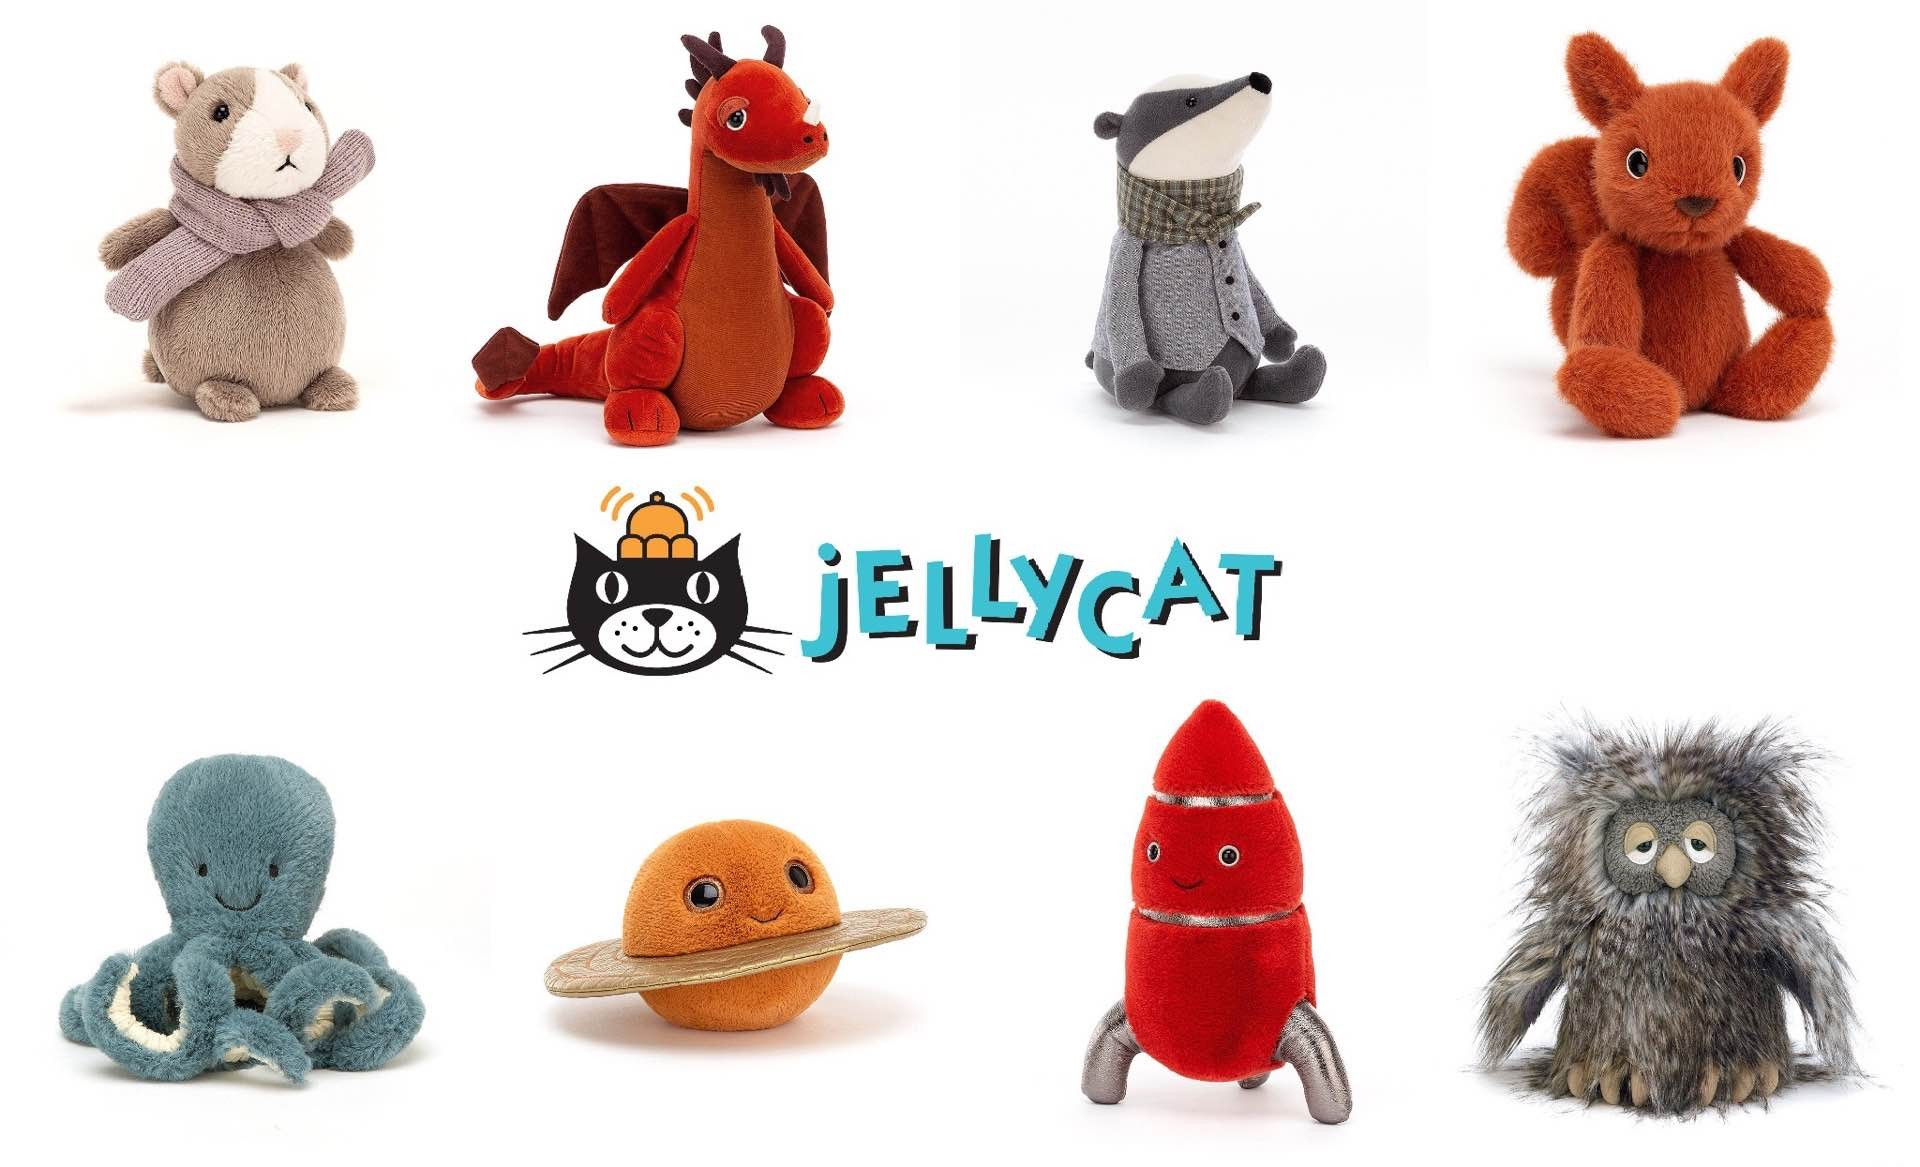 Jellycat stuffed animals. (prices vary, mostly in the $15–$35 range per plush)